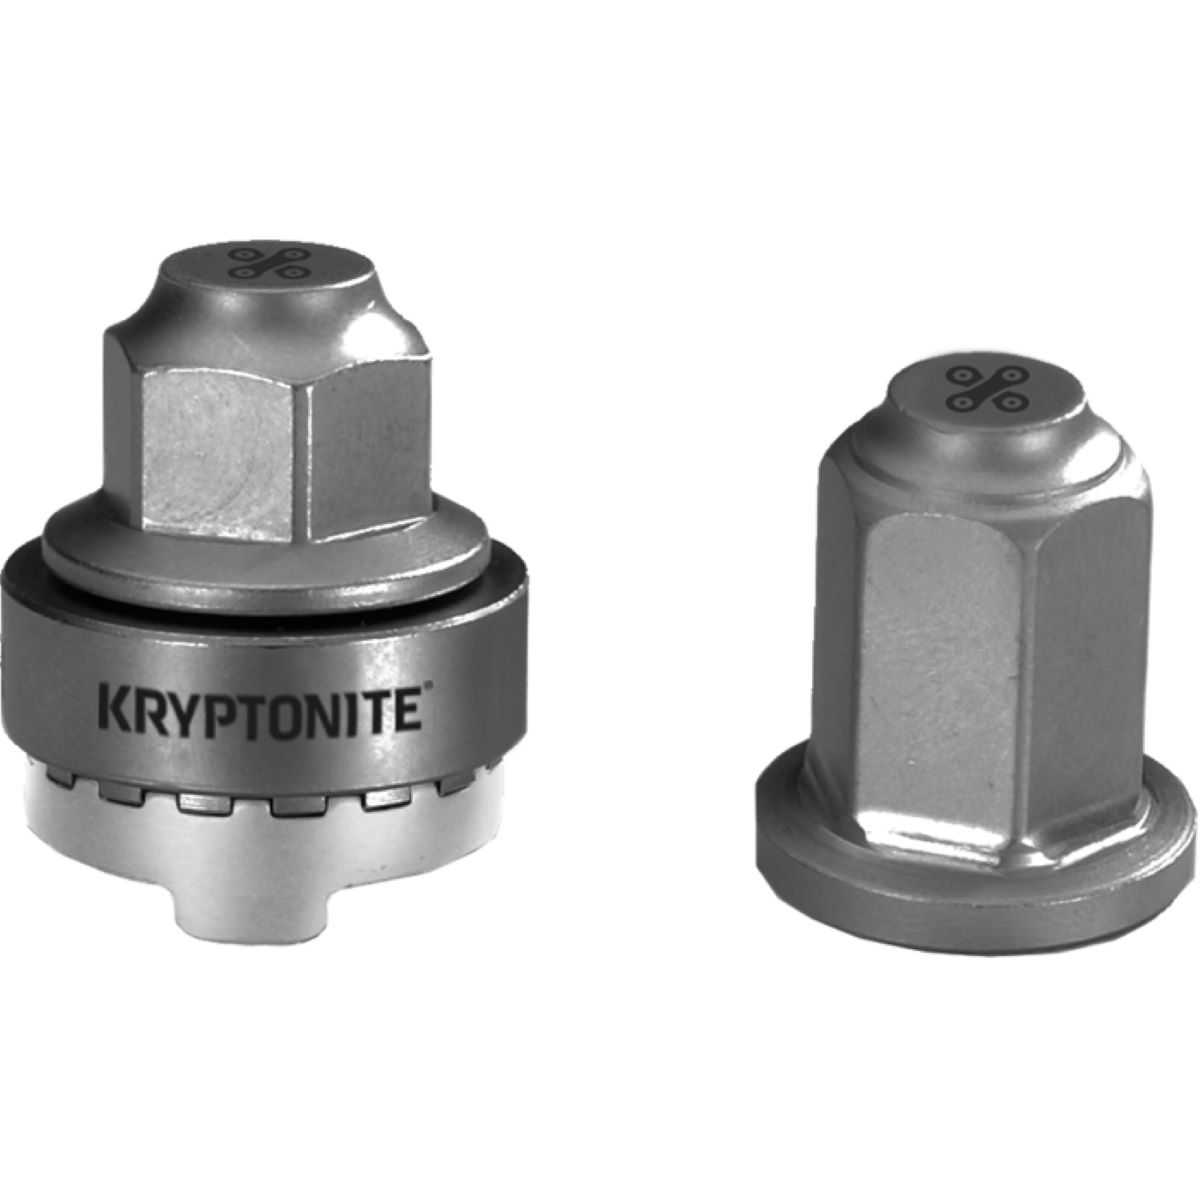 Tuercas de seguridad para ruedas Kryptonite Security WheelNutz - Recambios para bujes